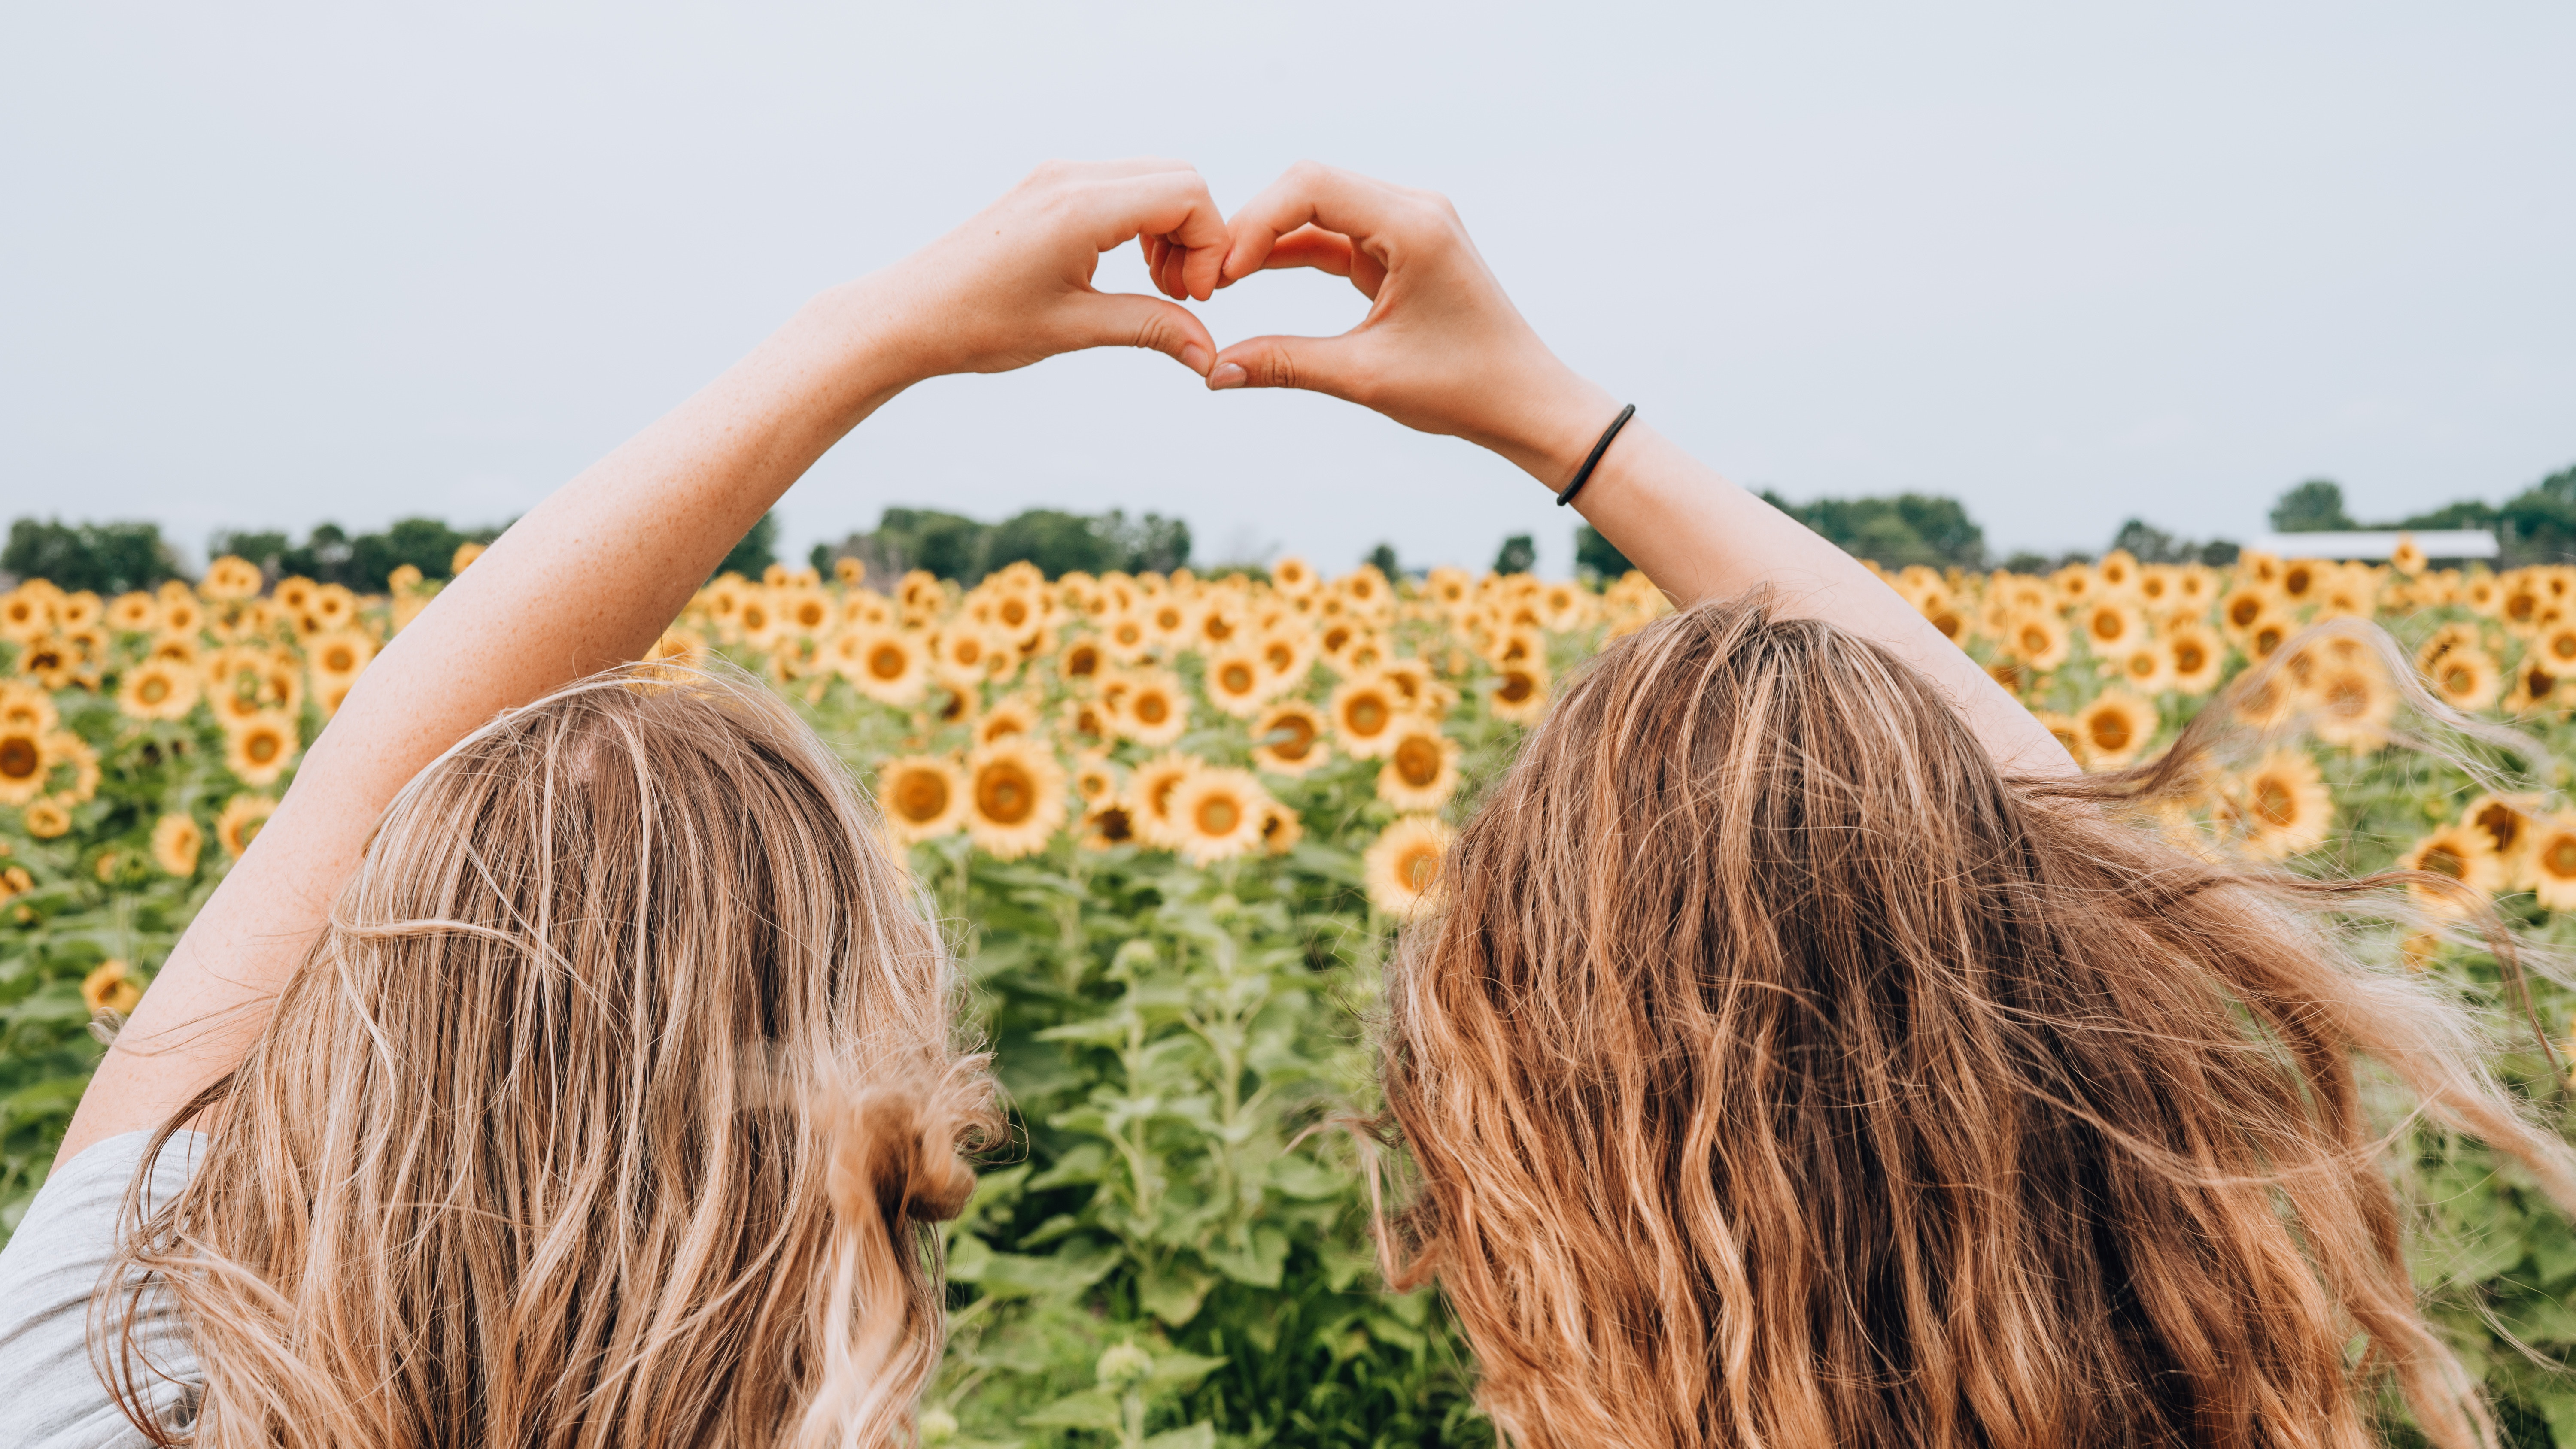 two women forming heart-shape using hands fronting sunflower field